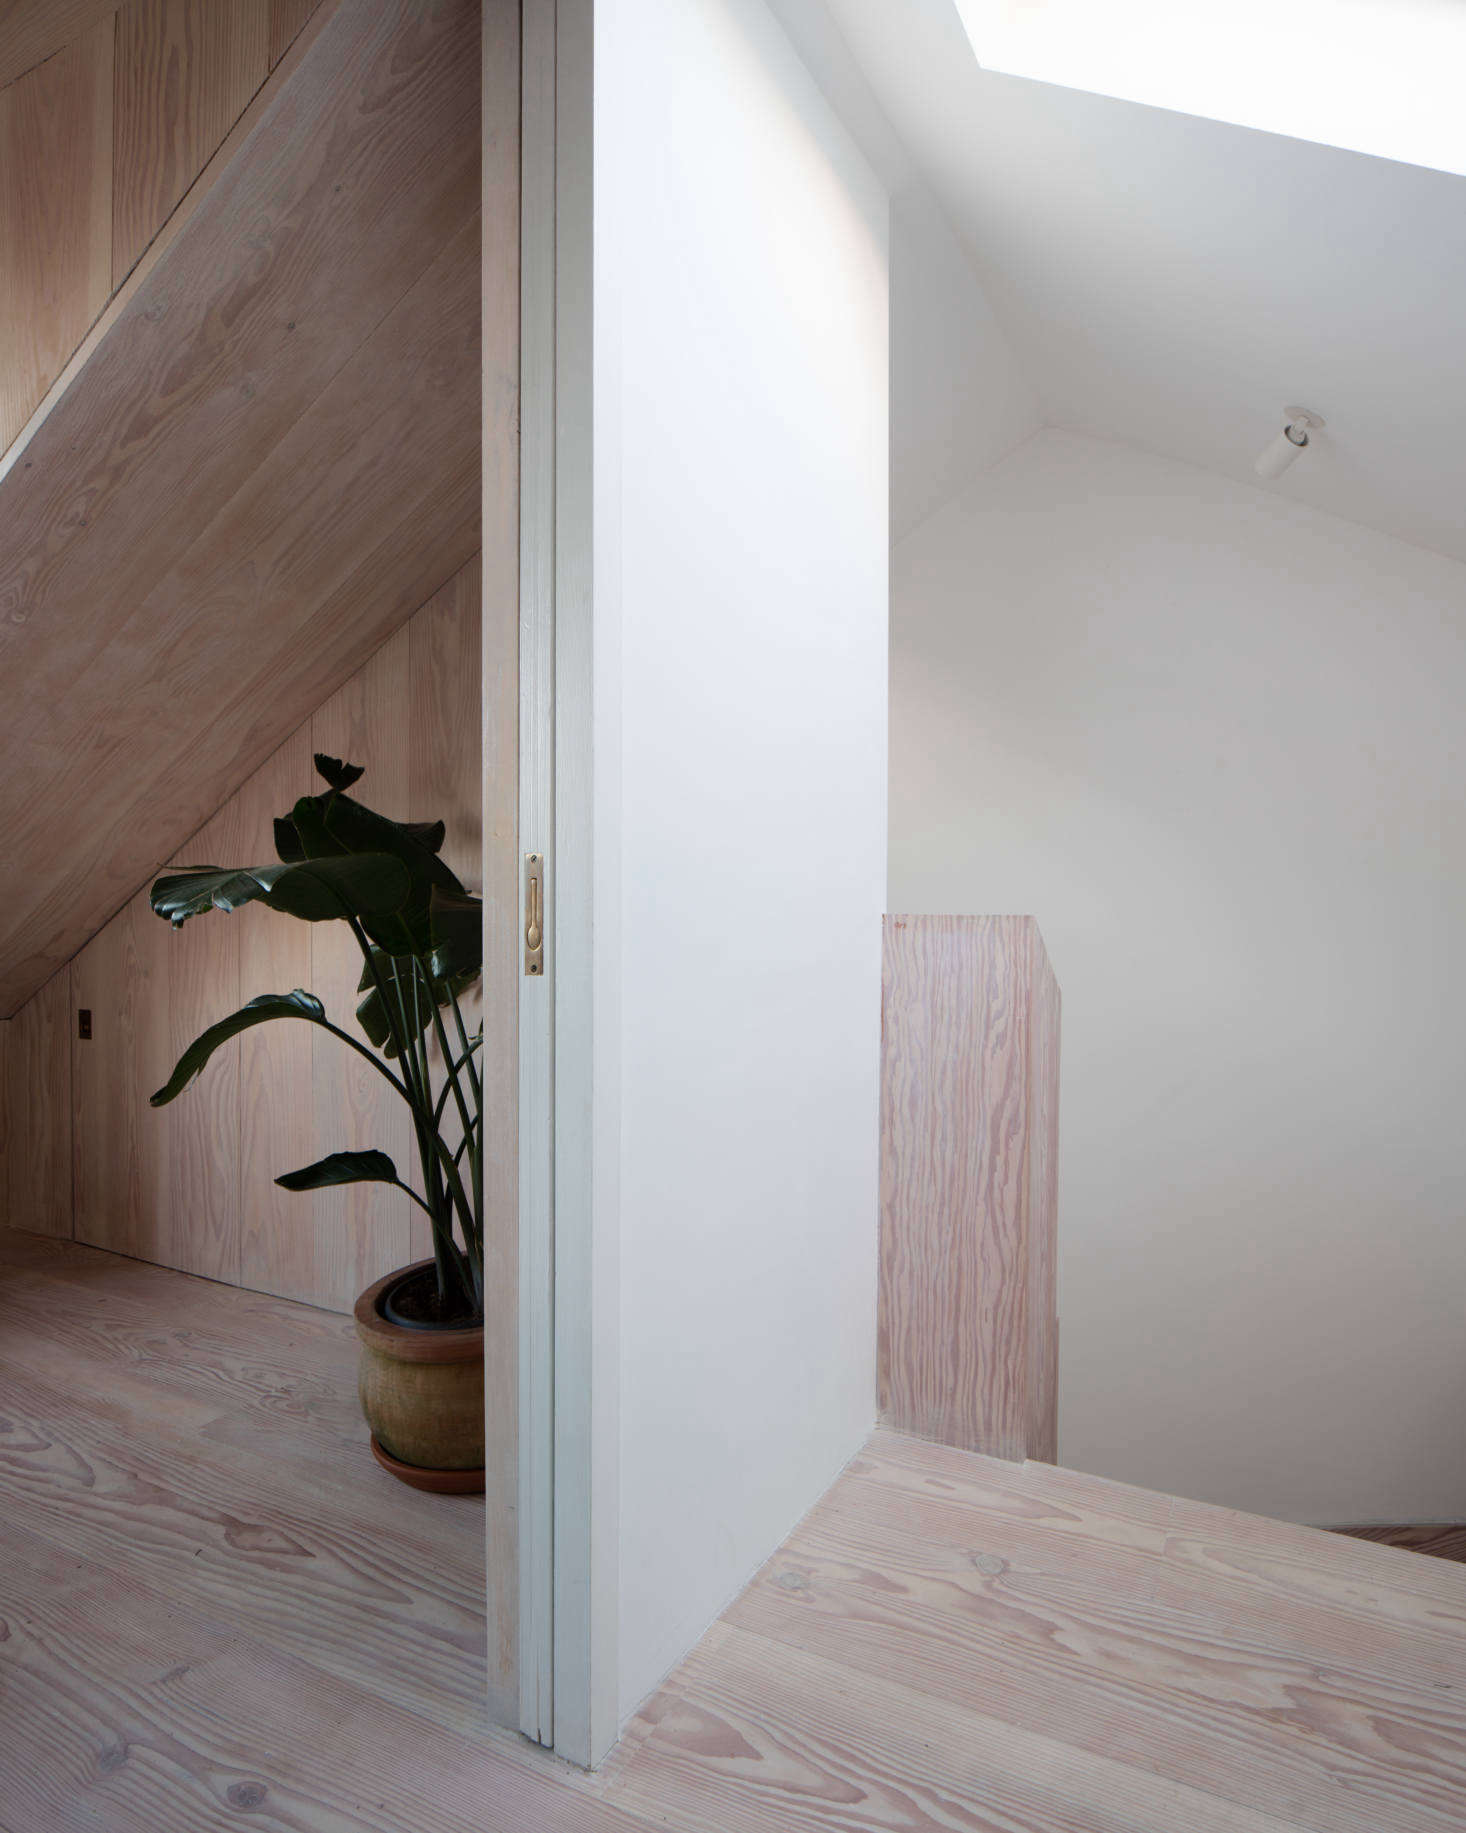 Upstairs, more Dinesen, including the stair surround.